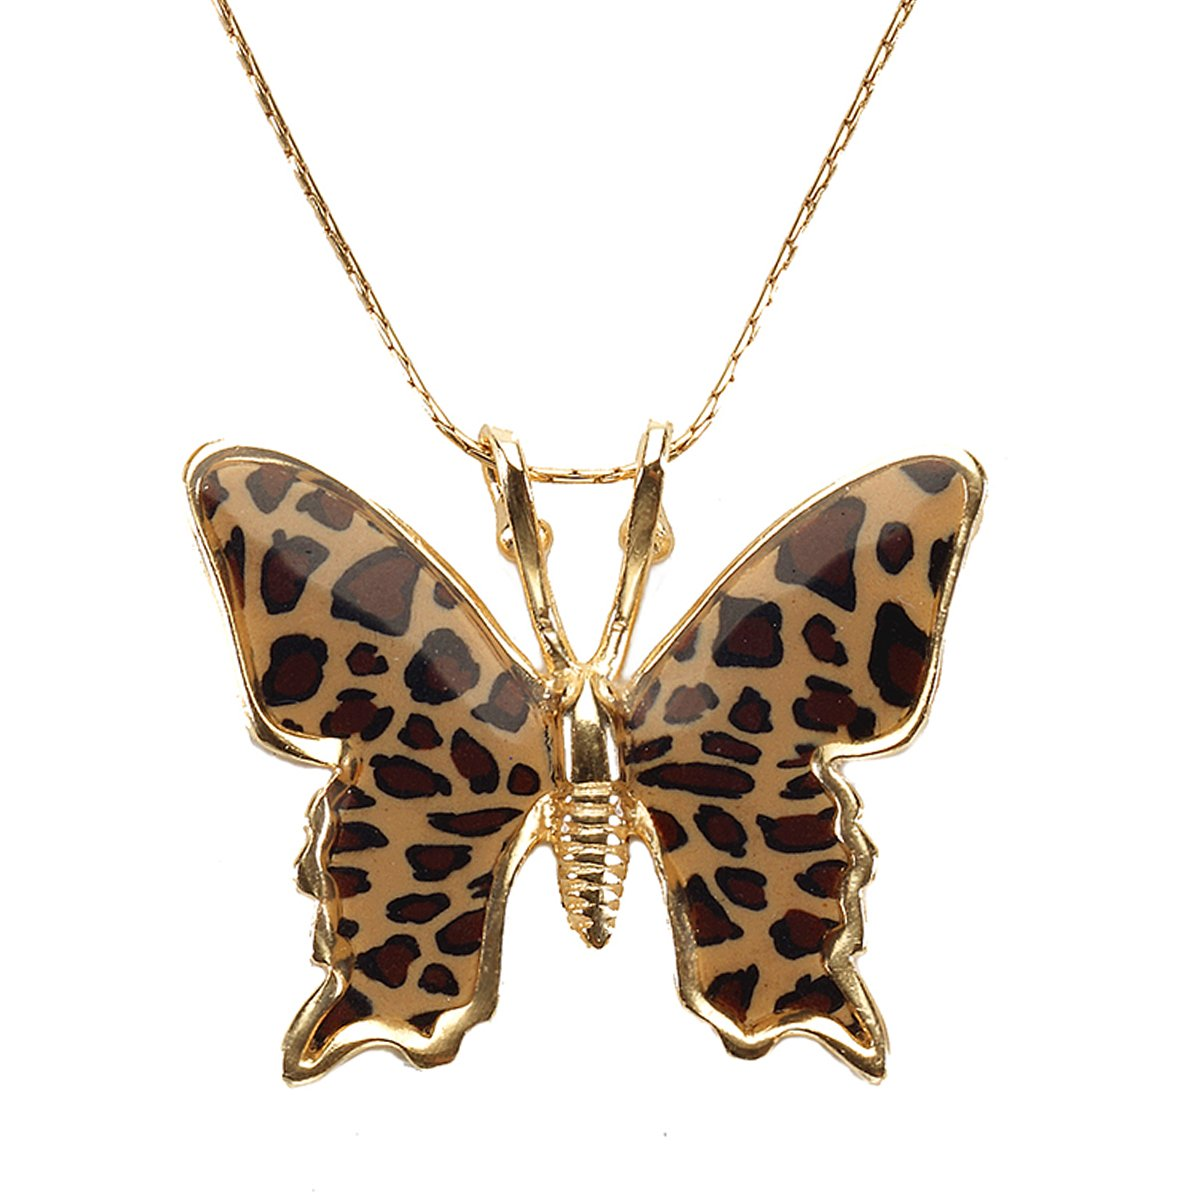 Gold Plated Sterling Silver Butterfly Necklace Pendant Leopard Print Polymer Clay Handmade Charm Jewelry, 16.5'' Gold Filled Chain by Adina Plastelina Handmade Jewelry (Image #1)